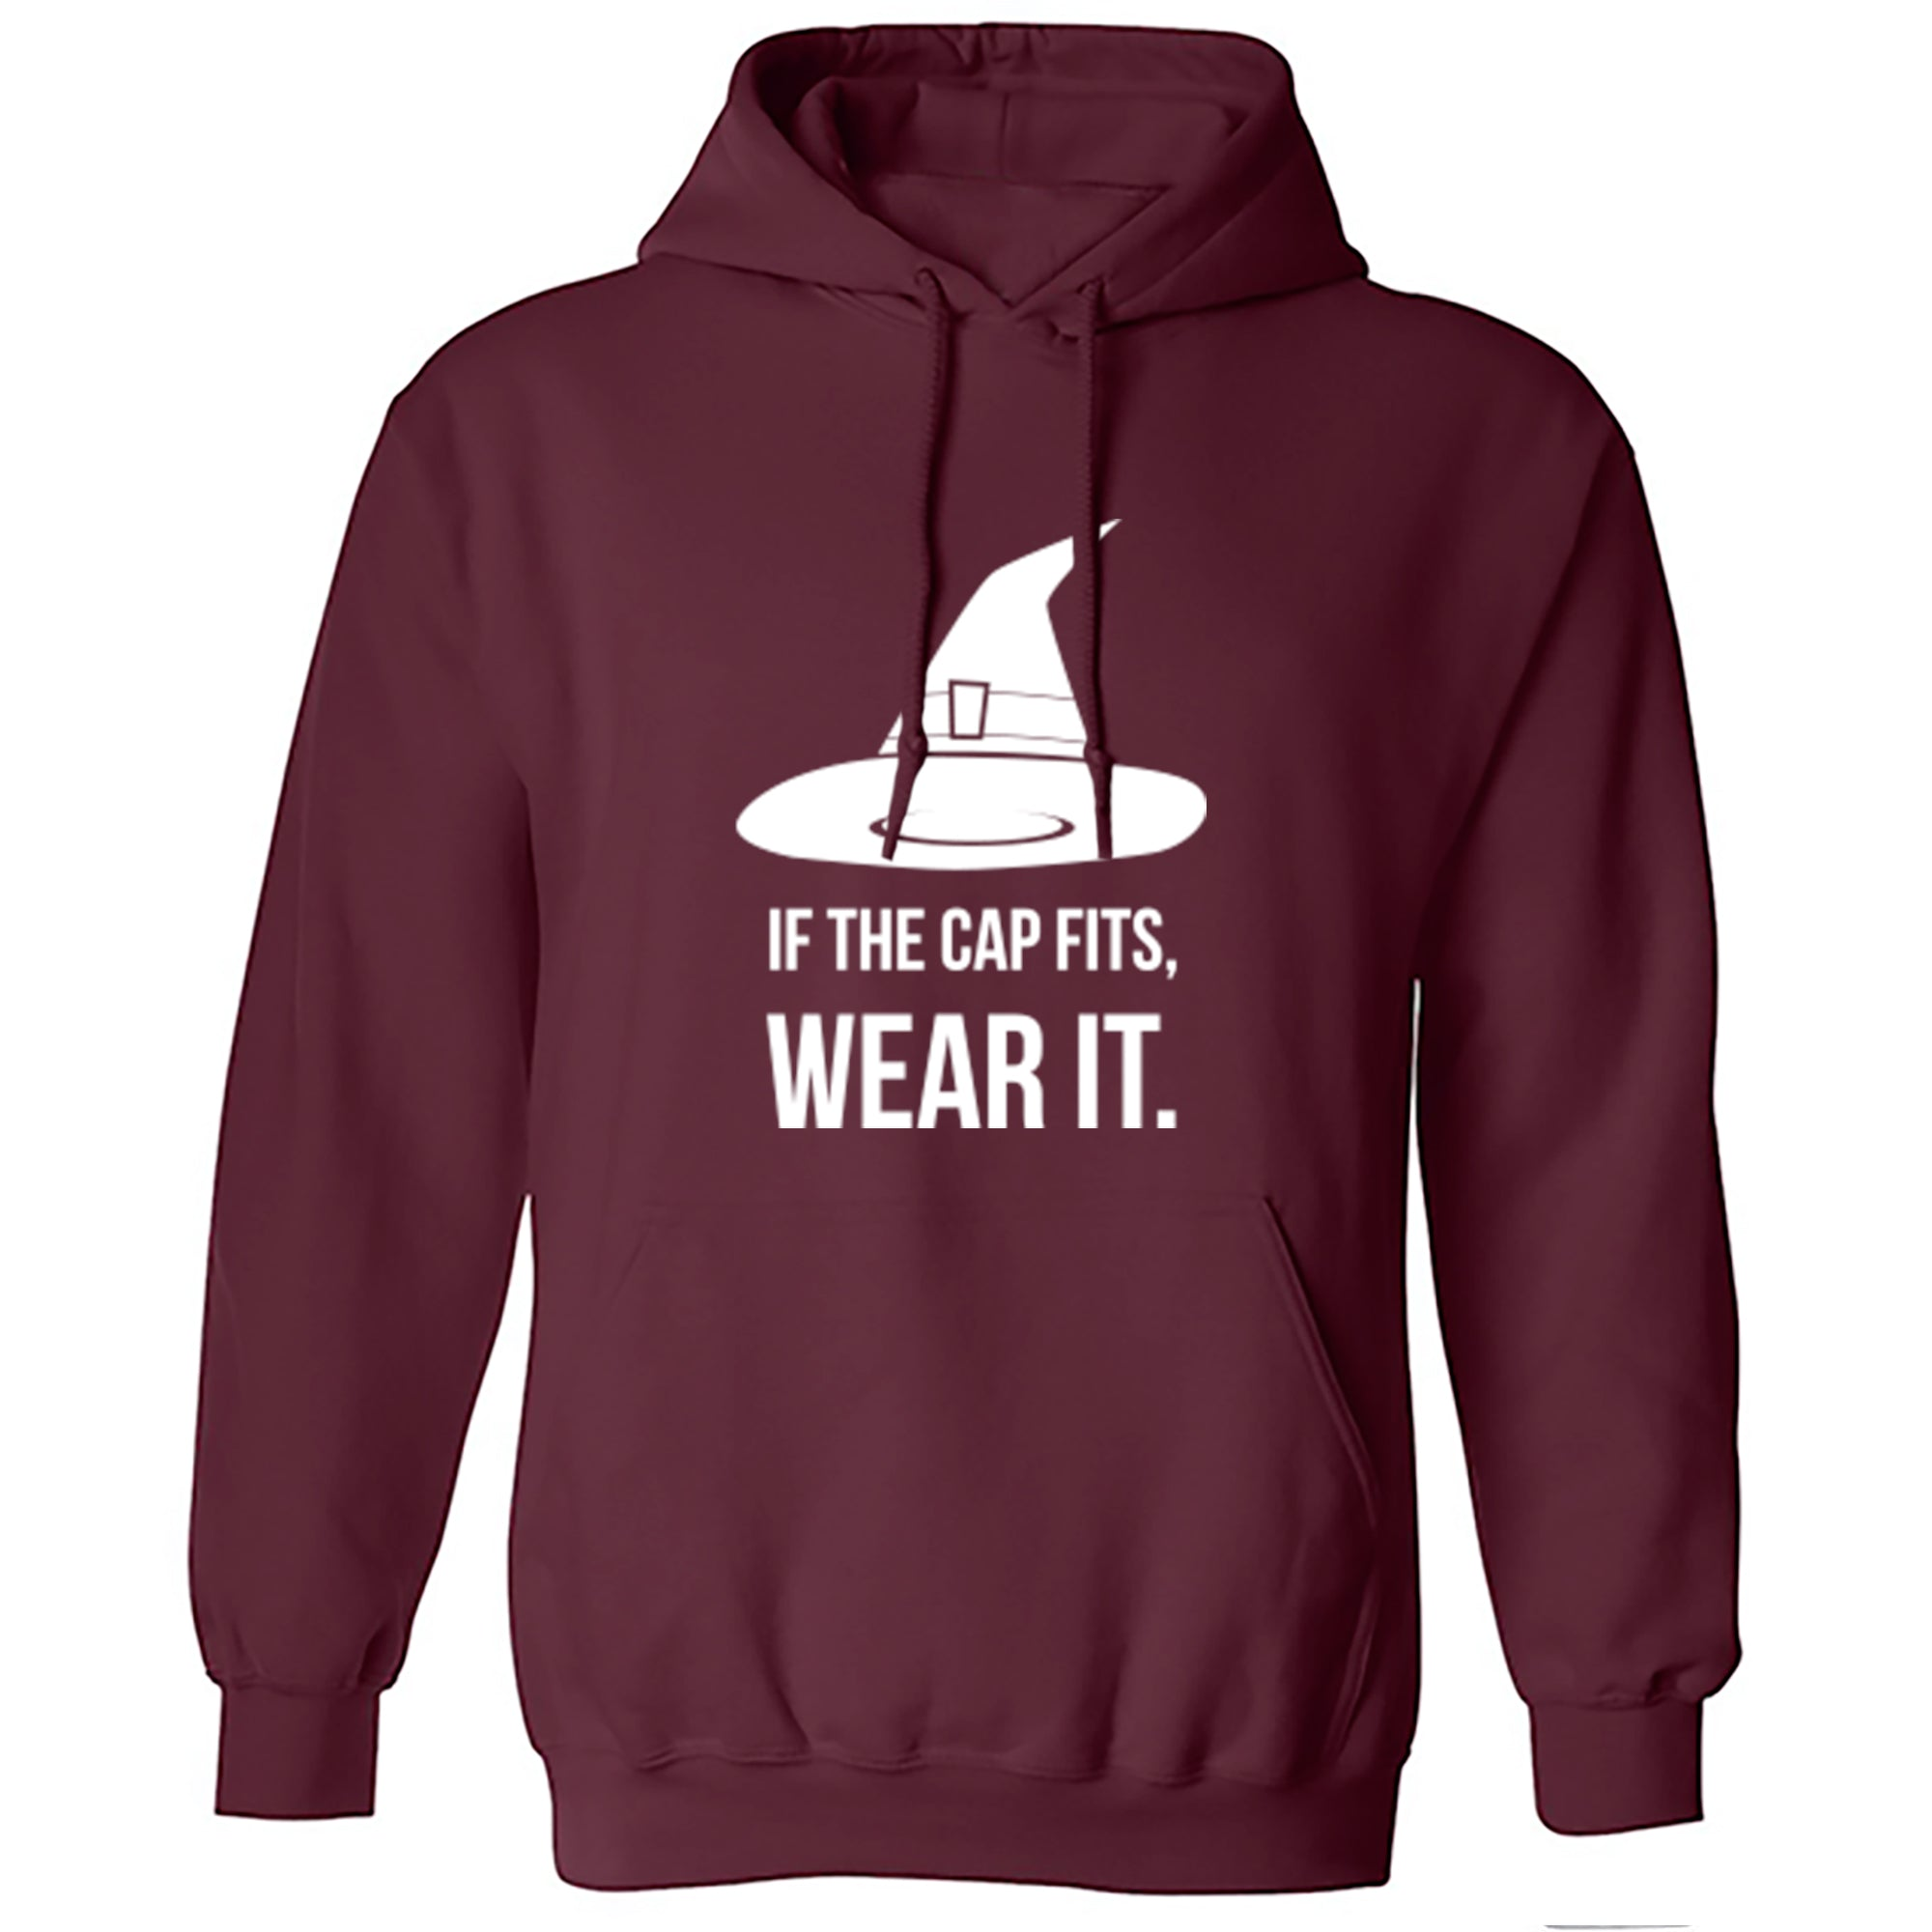 If The Cap Fits, Wear It Unisex Hoodie A0025 - Illustrated Identity Ltd.